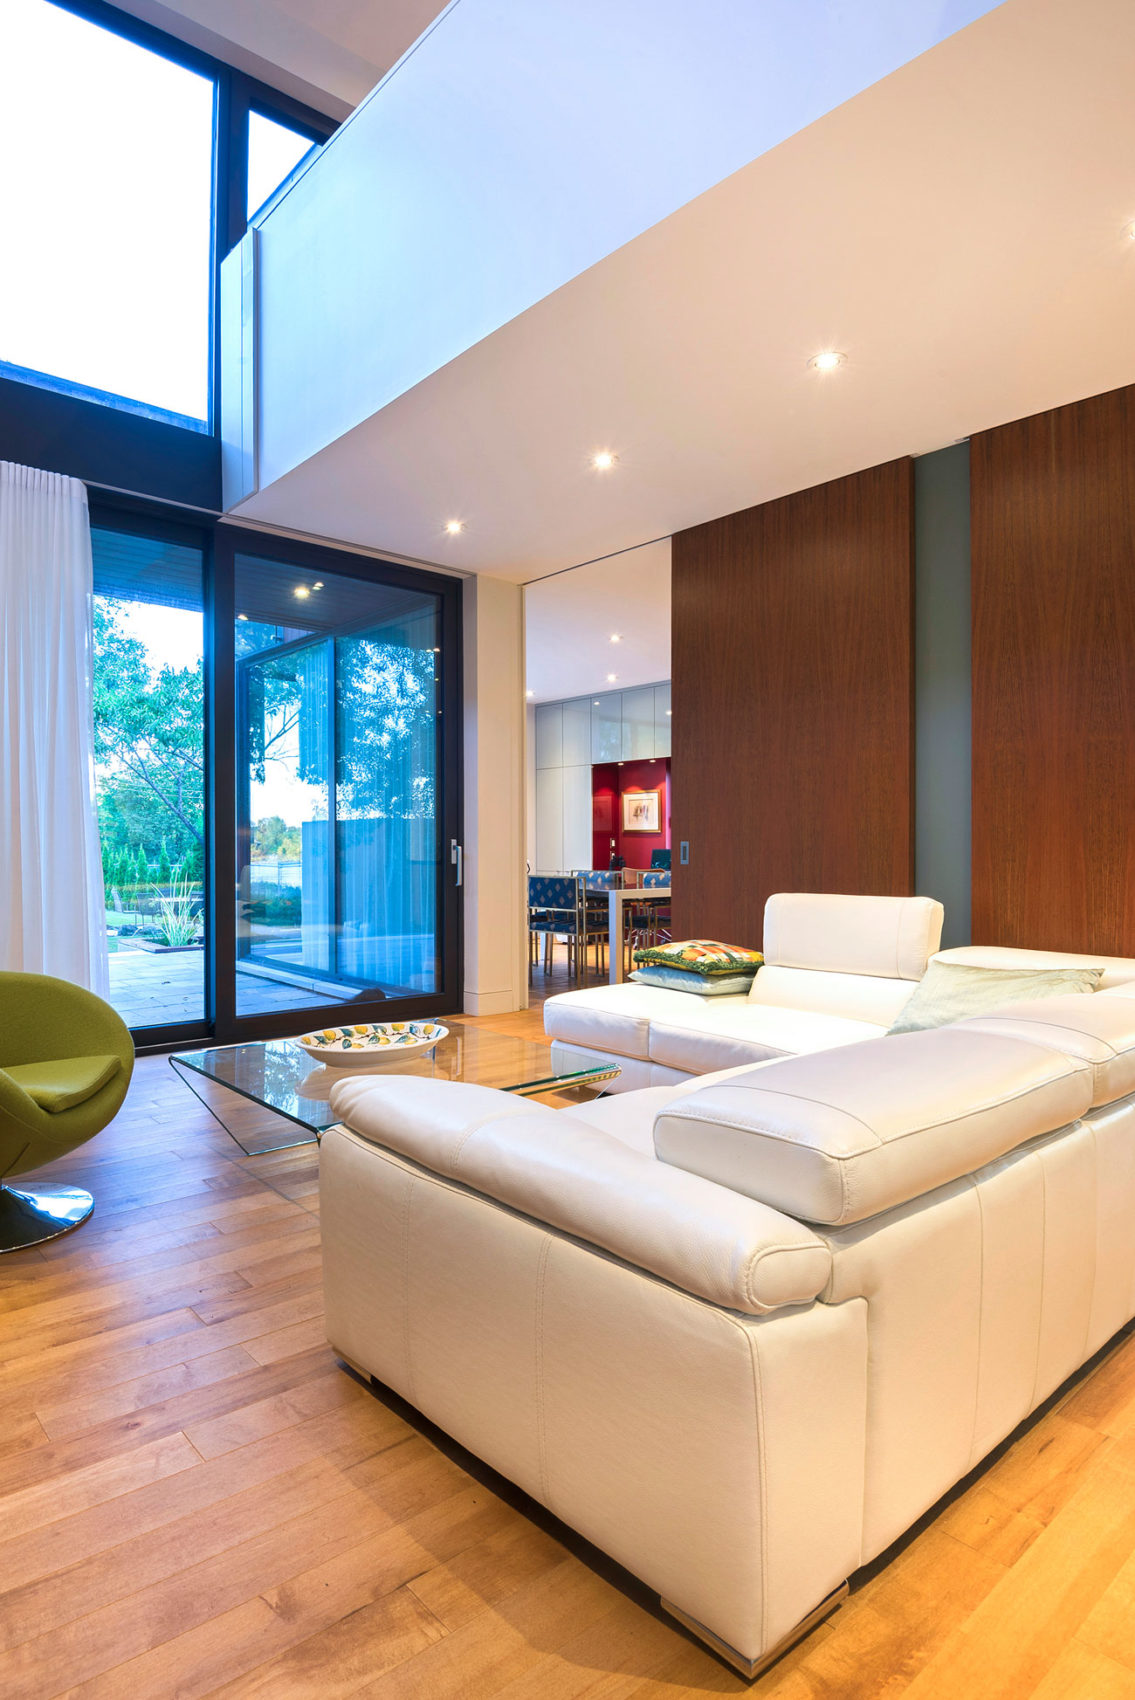 Home in Montreal by Anik Peloquin Architecte (7)